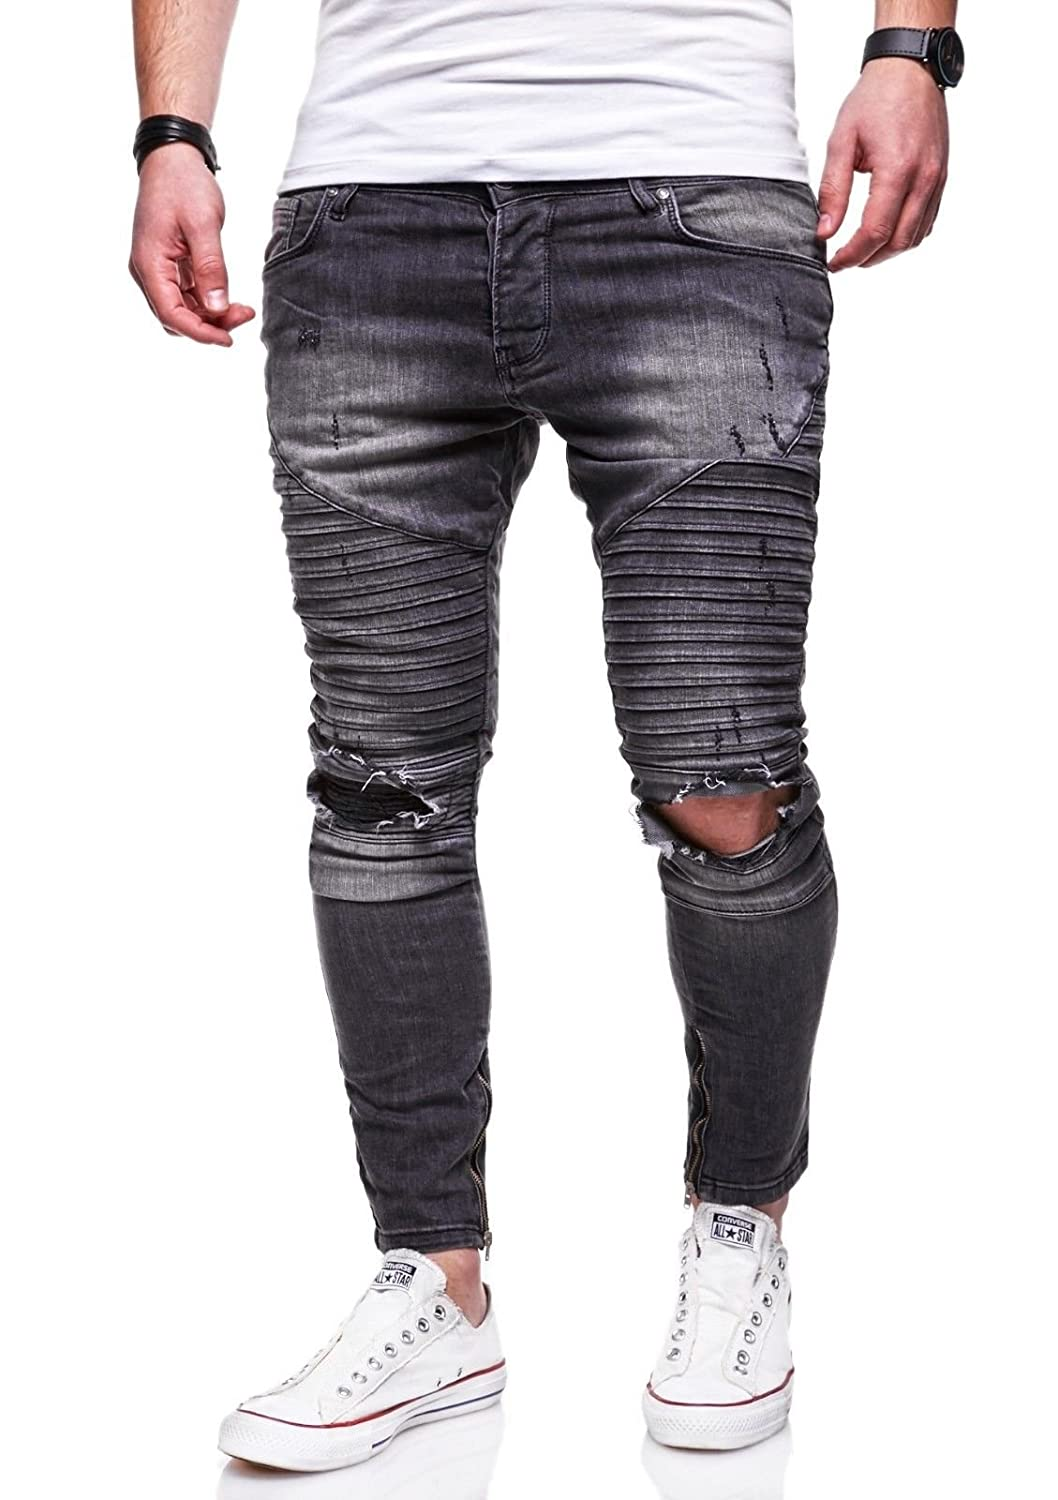 Behype Mens Jeans Pants With Destroyed Effect and Ripped Knees JN-3239